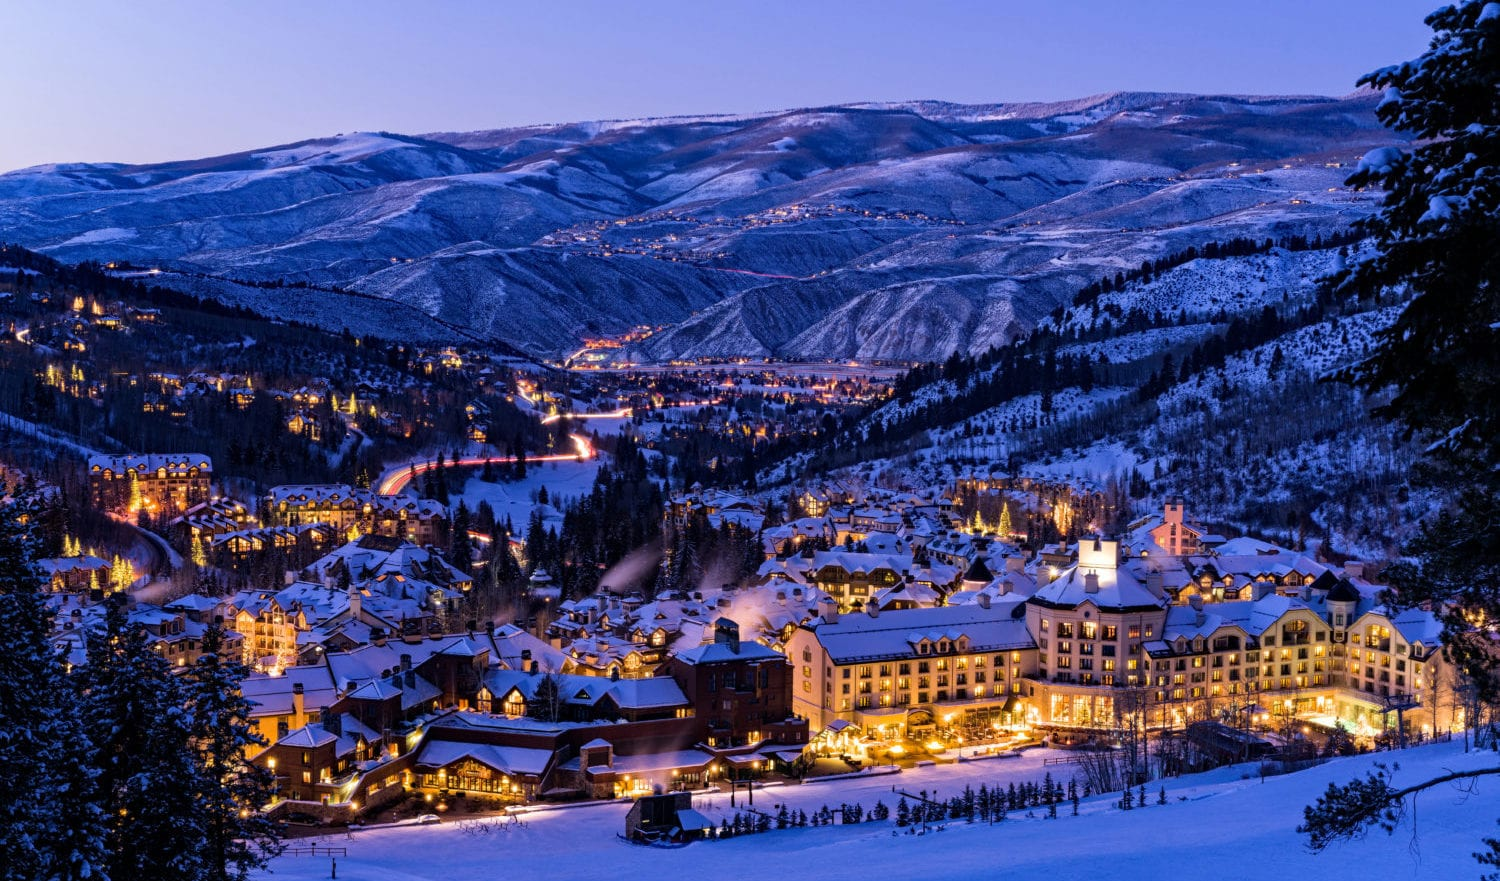 Beaver Creek Resort Winter Skiing at Dusk - Scenic view of village illuminated at night with ski runs.